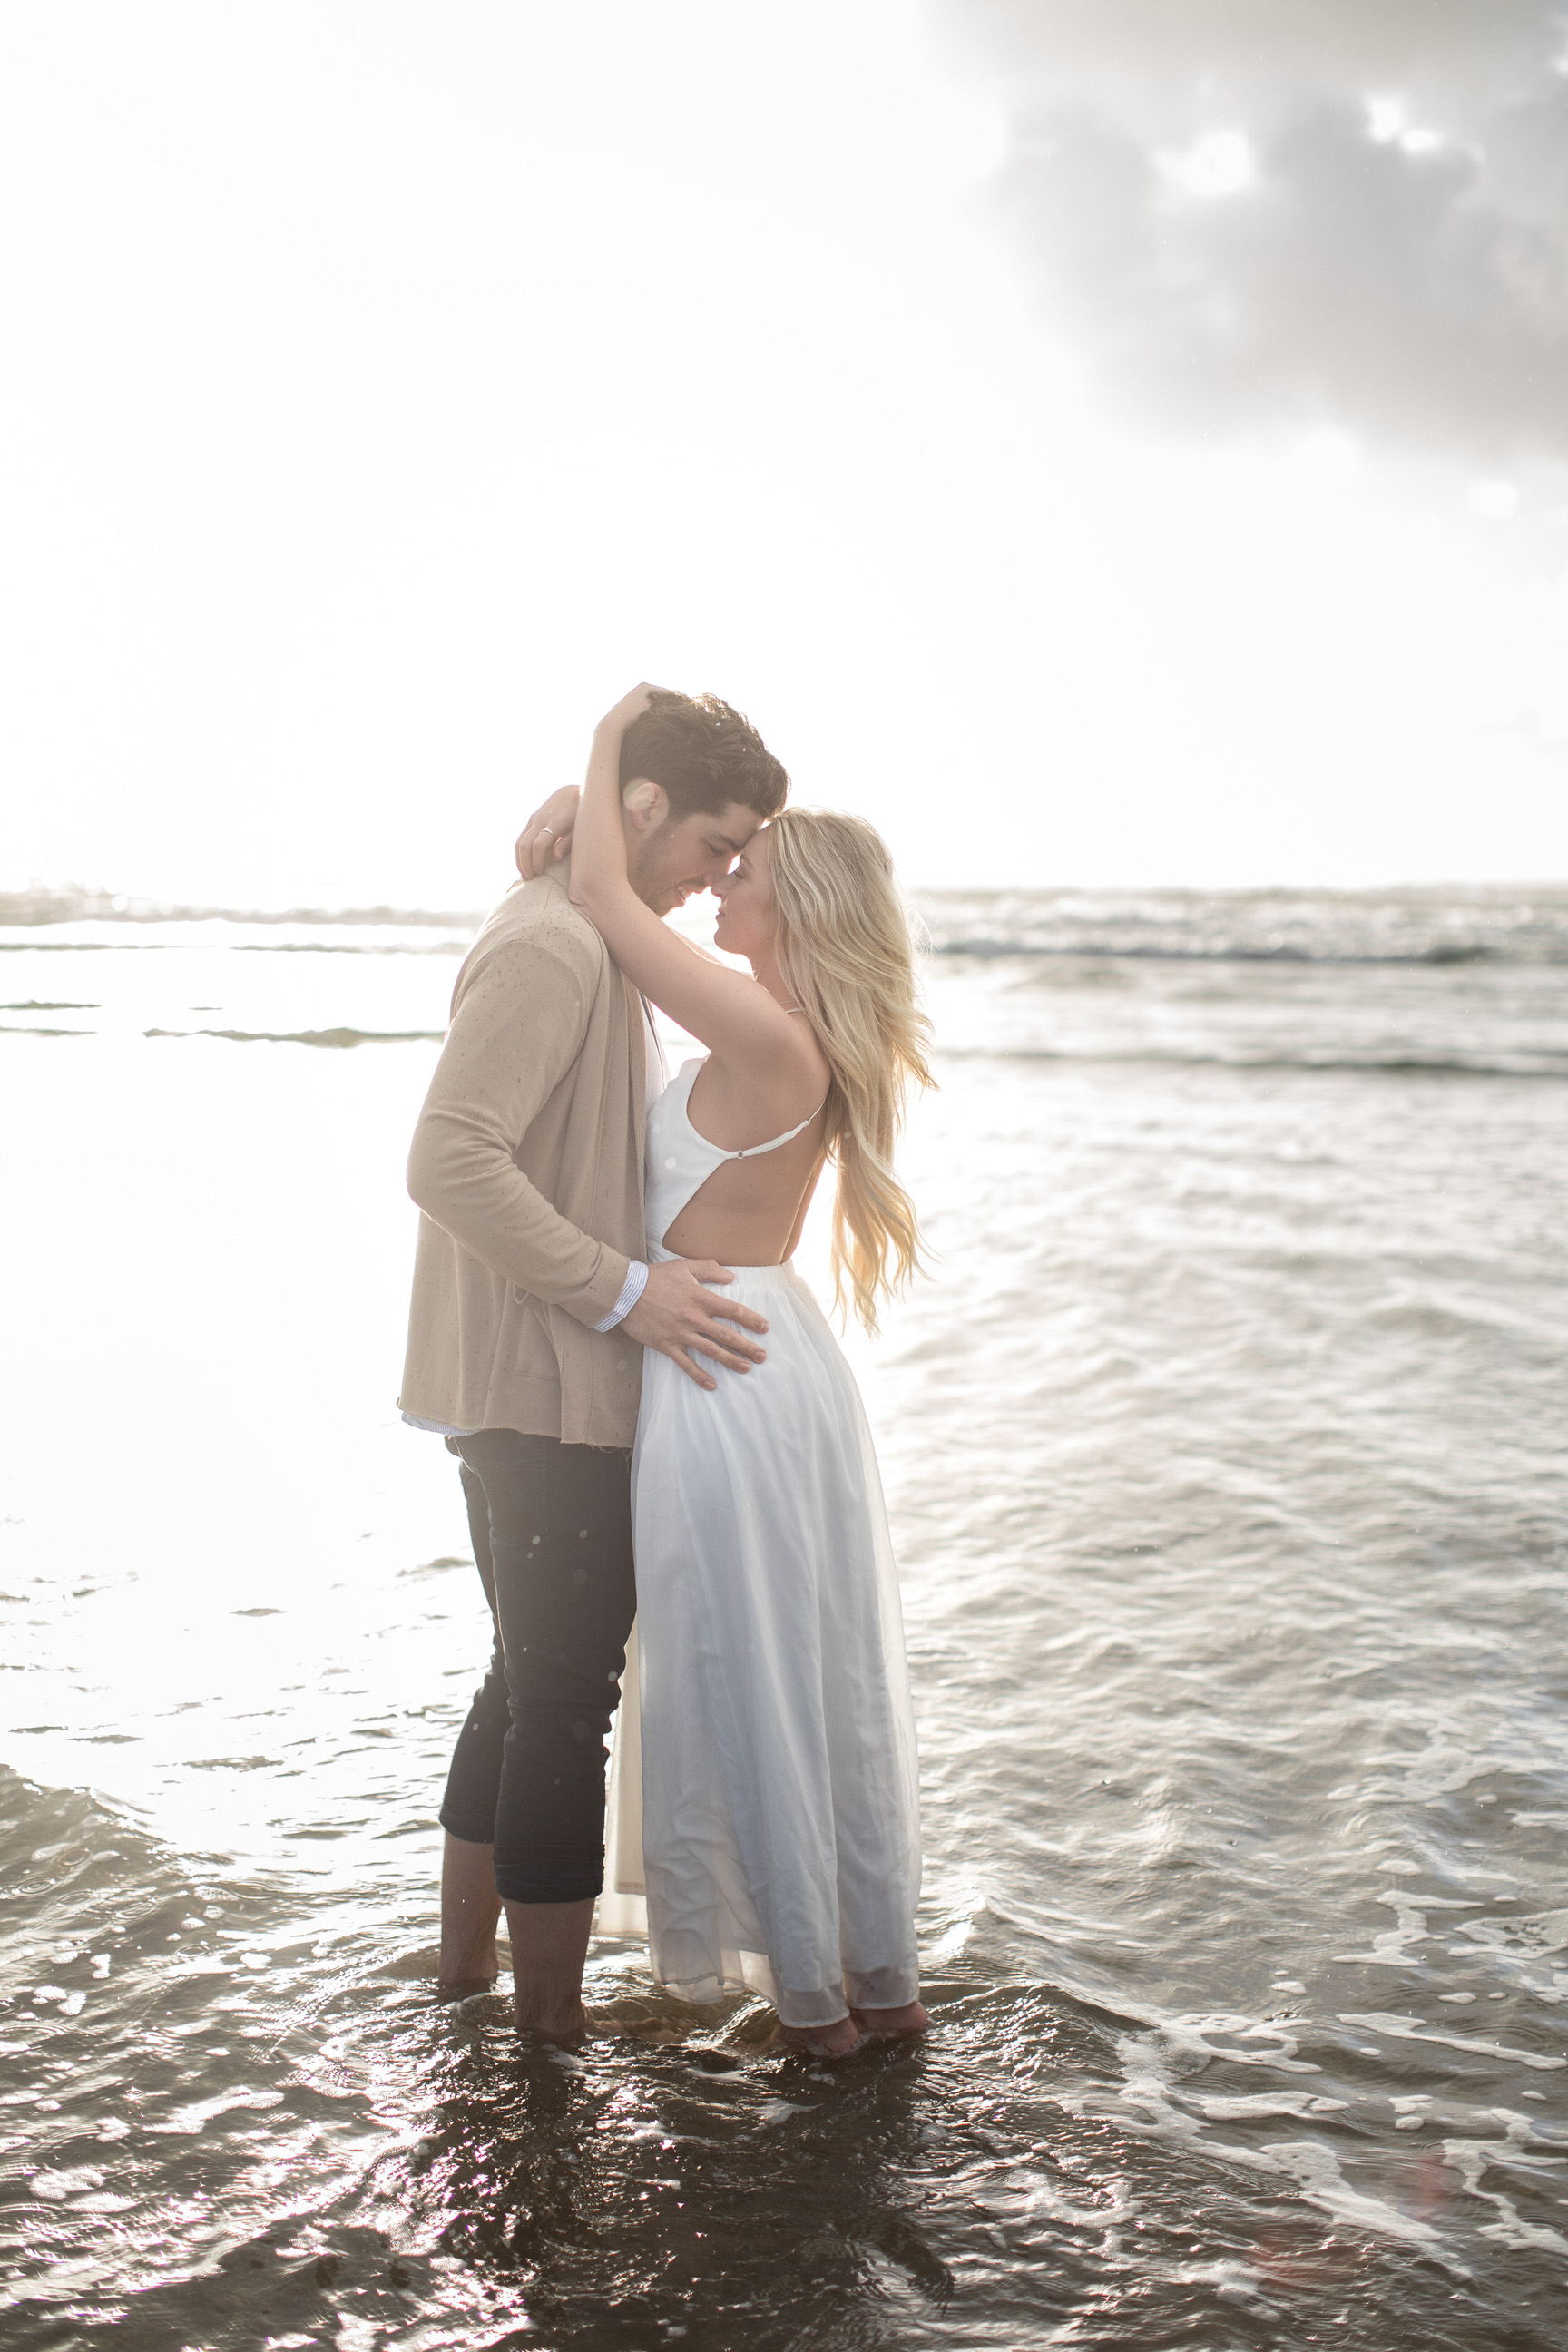 CANNONBEACHENGAGEMENTS (32 of 58).jpg